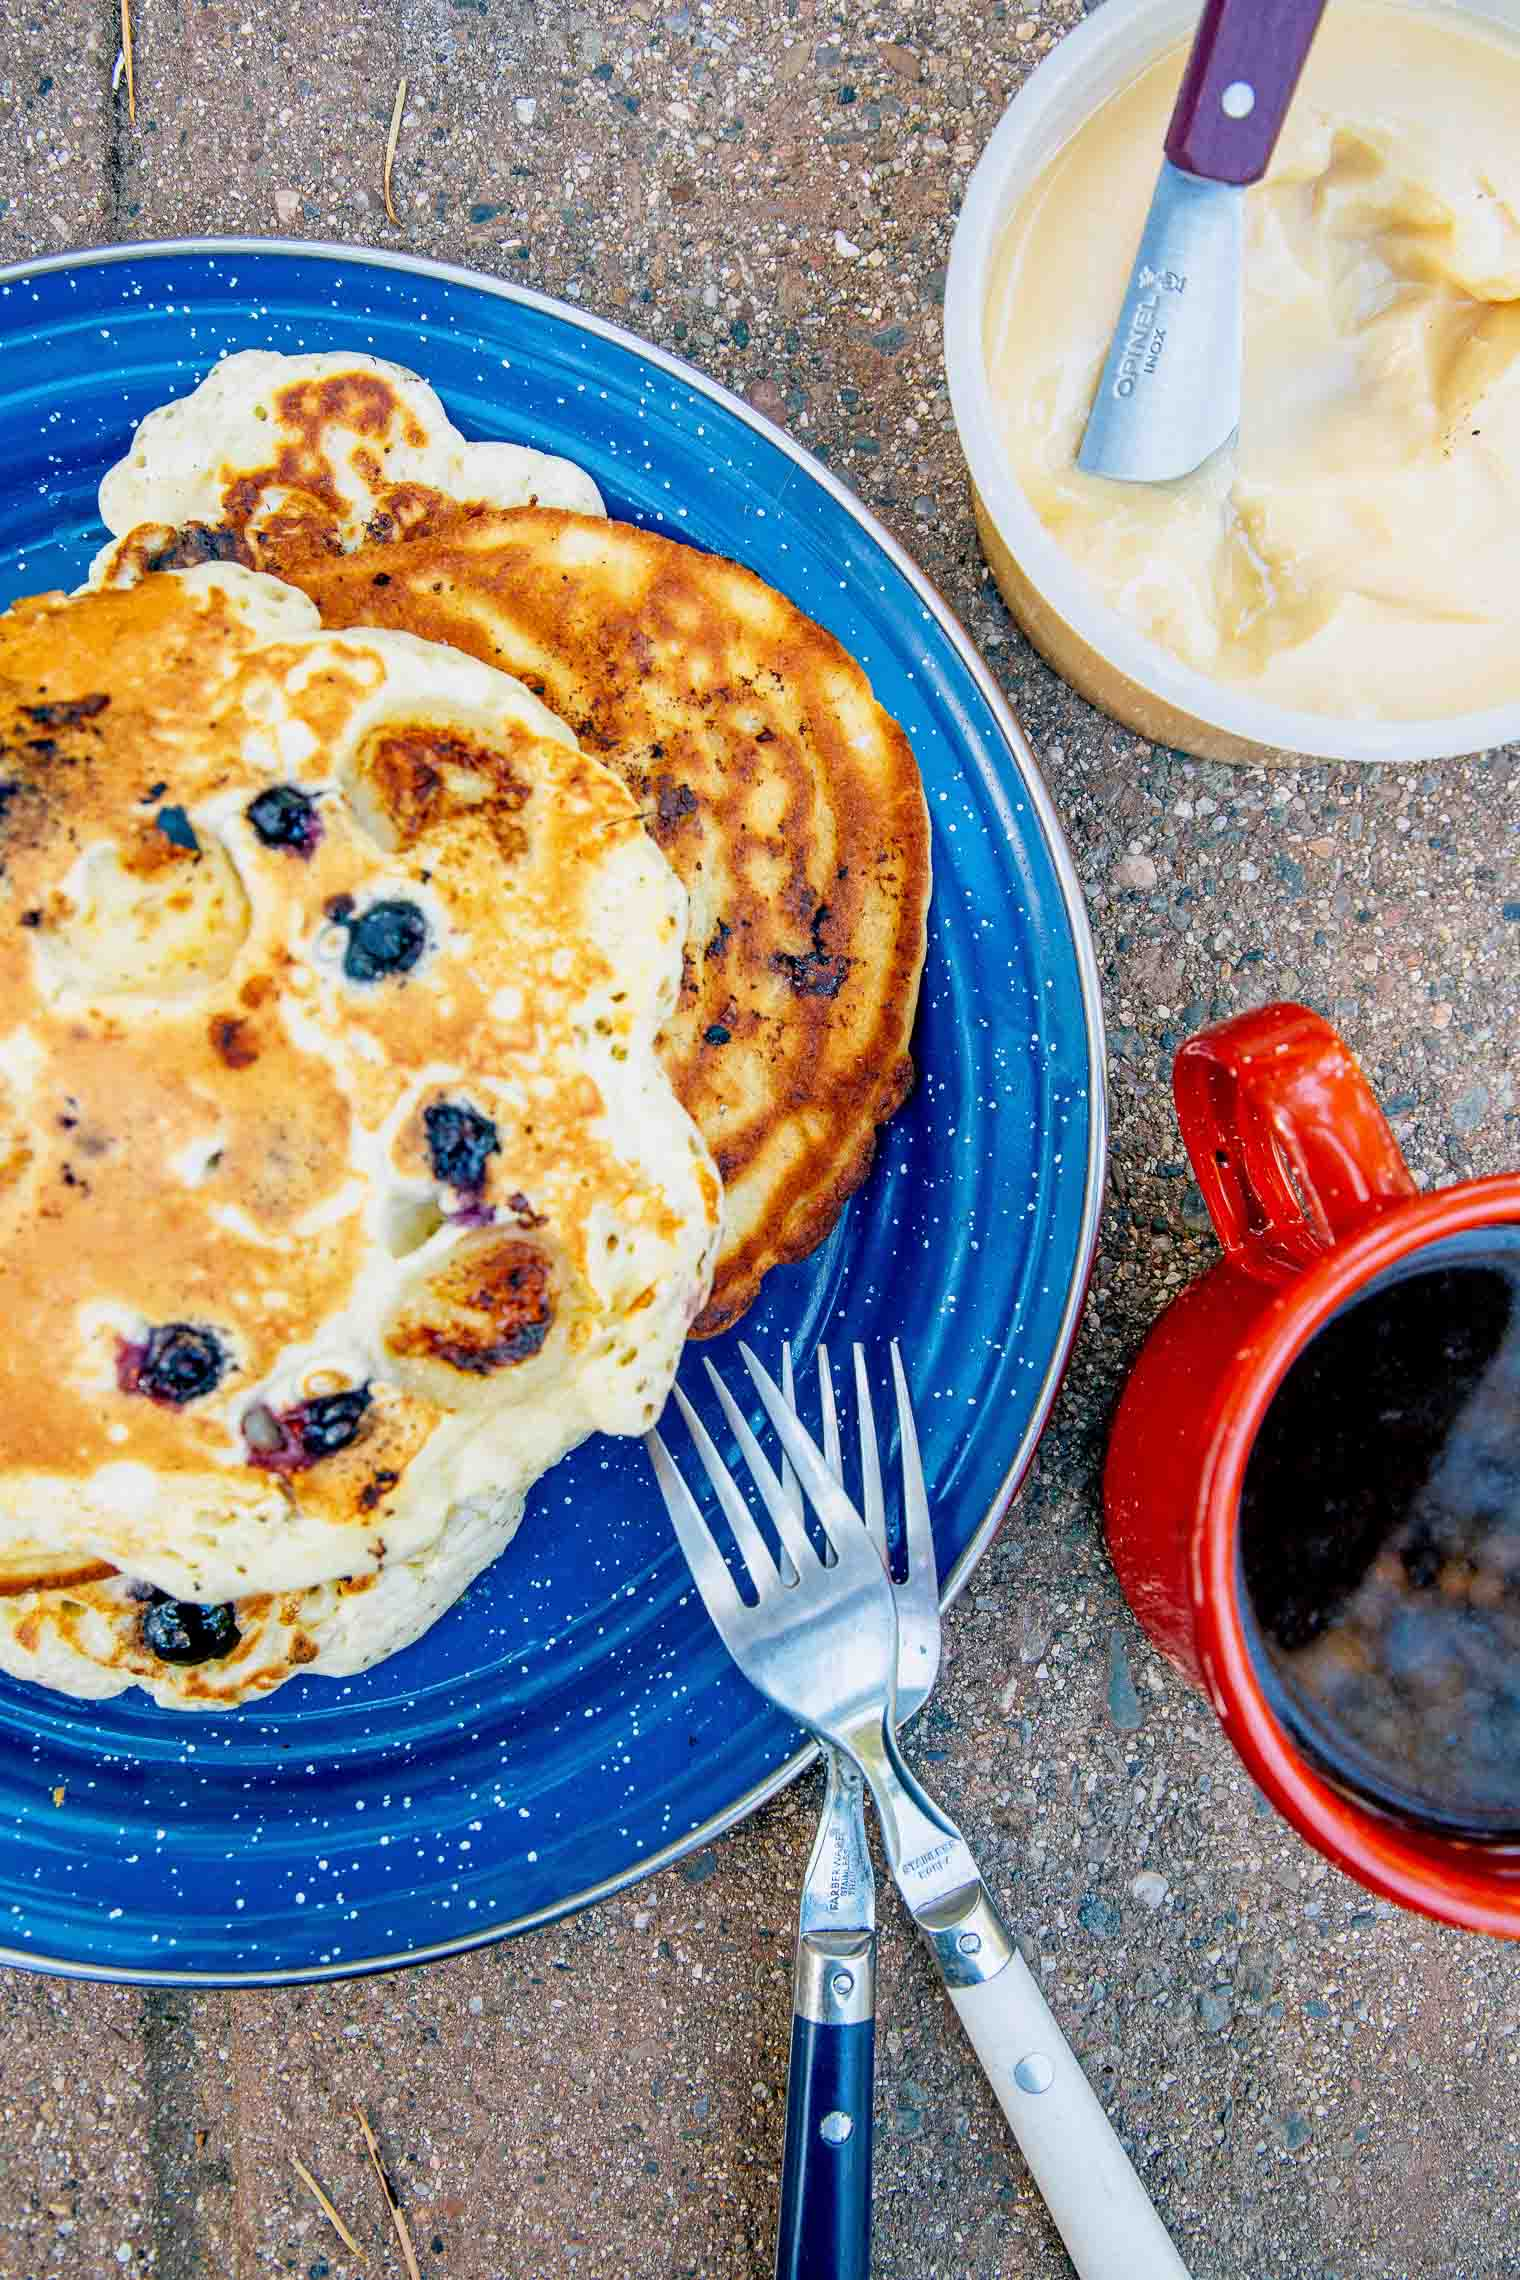 A stack of blueberry banana pancakes on a plate next to a cup of coffee